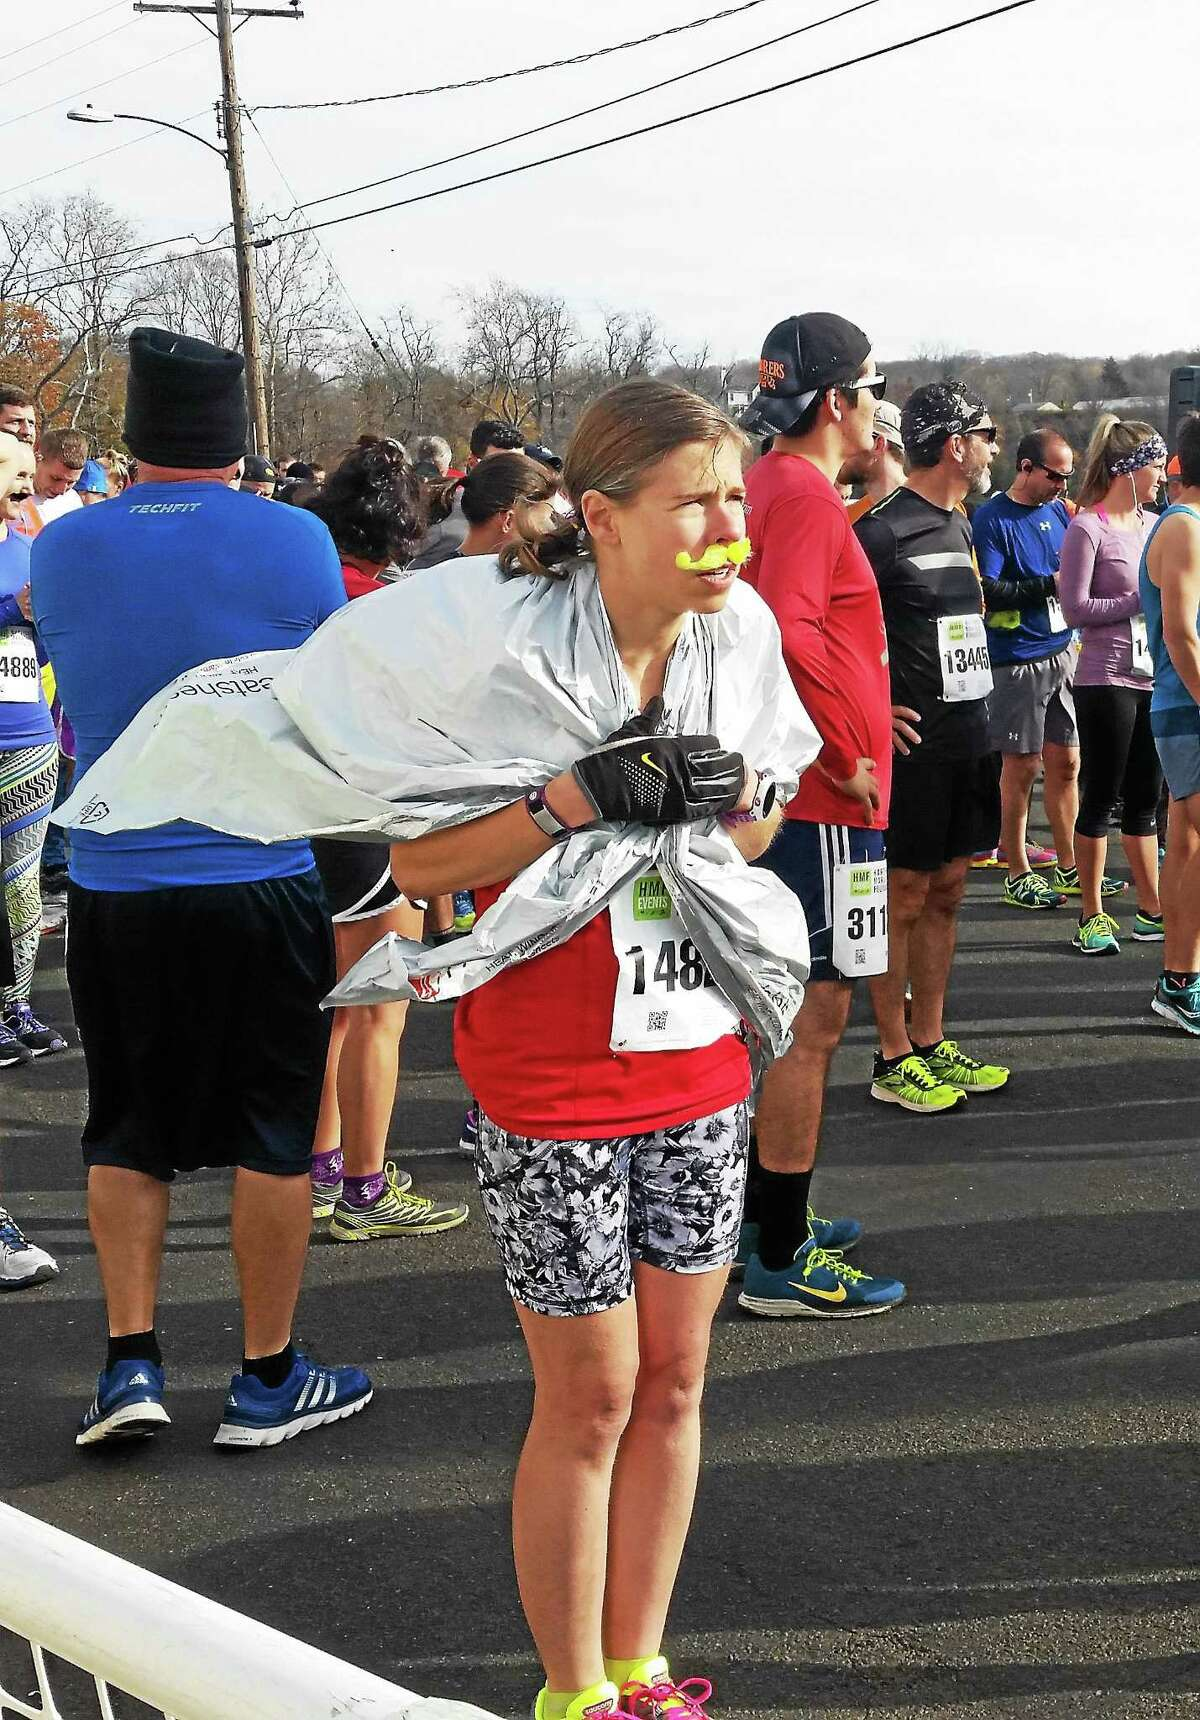 The 959 runners who competed in The Hartford Marathon Movember 5K in 2015 made their way from the Brownstone Discovery Park in Portland, over the Arrigoni Bridge, then crossed the finish line at the Mattabesett Canoe Club in Middletown.